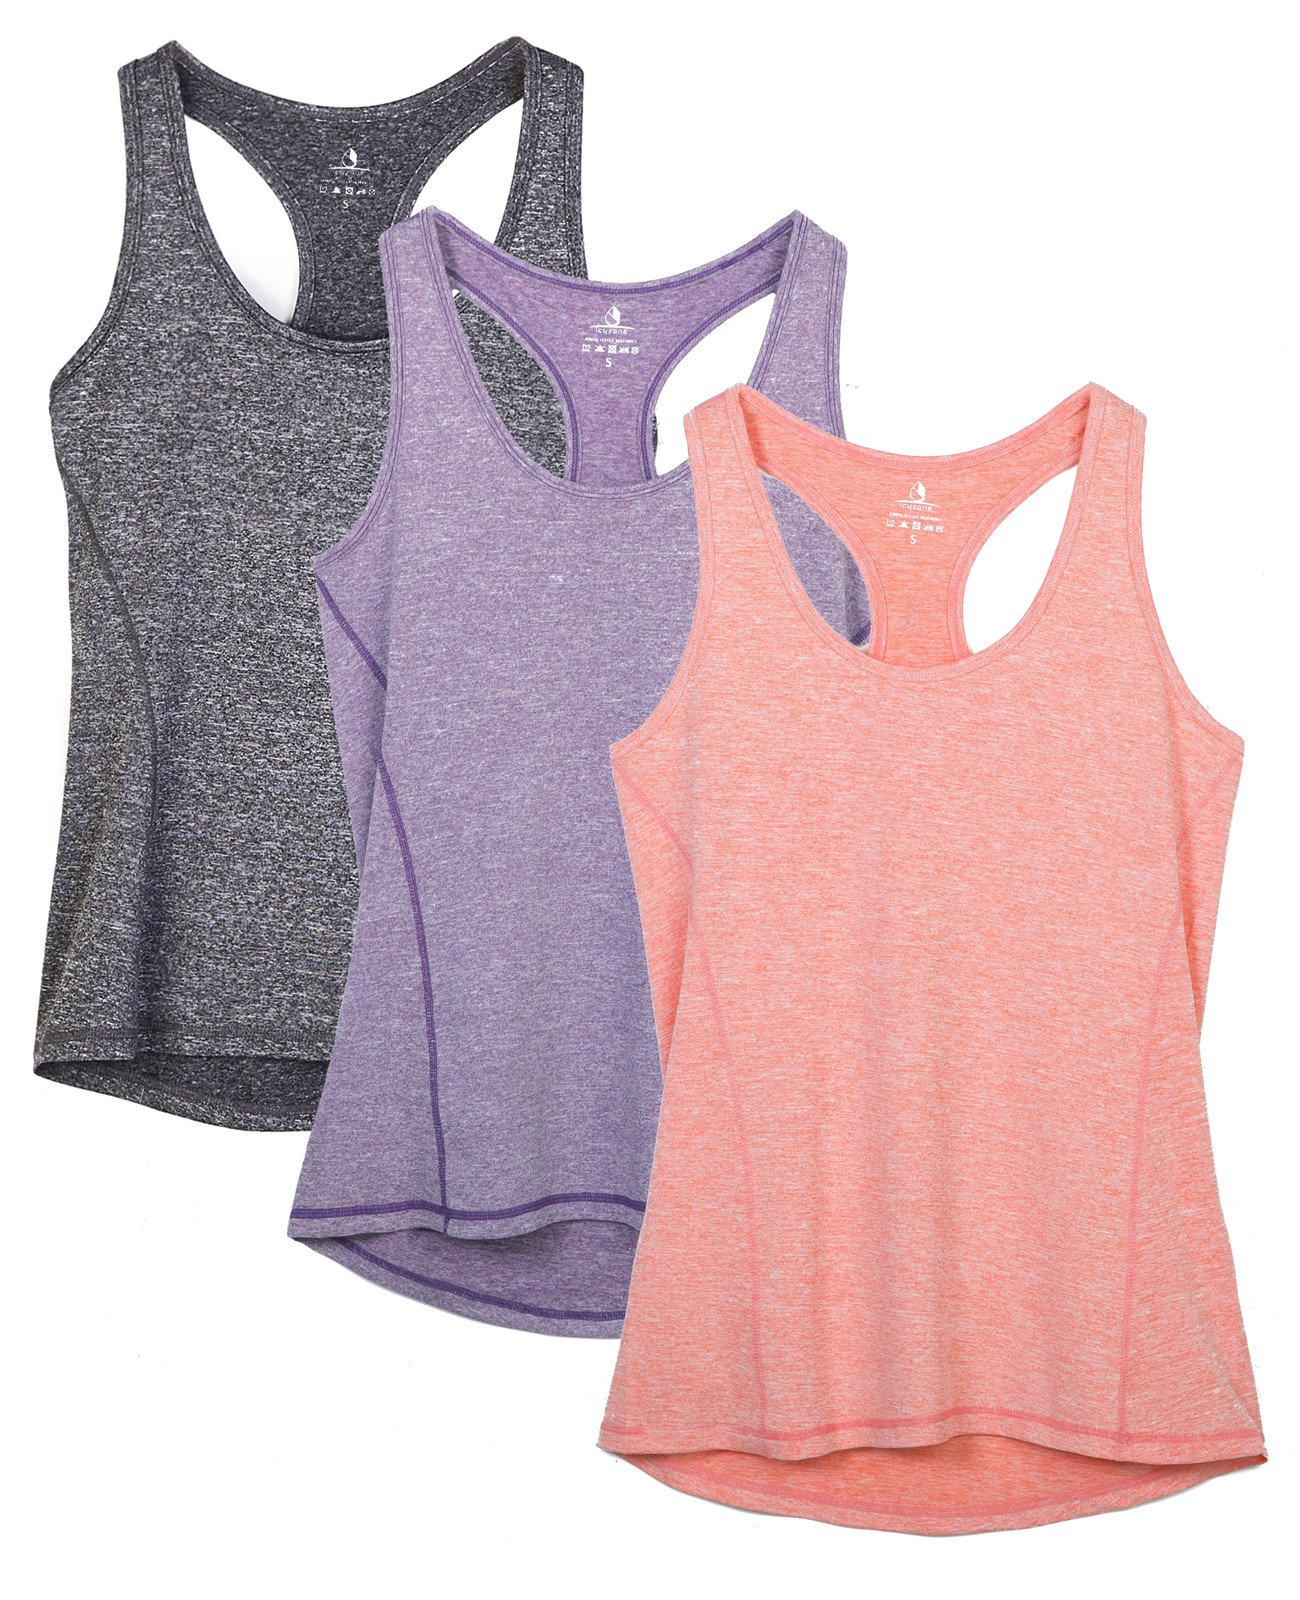 icyzone Workout Tank Tops for Women - Racerback Athletic Yoga Tops, Running Exercise Gym Shirts(Pack of 3)(XXL, Charcoal/Lavender/Peach) by icyzone